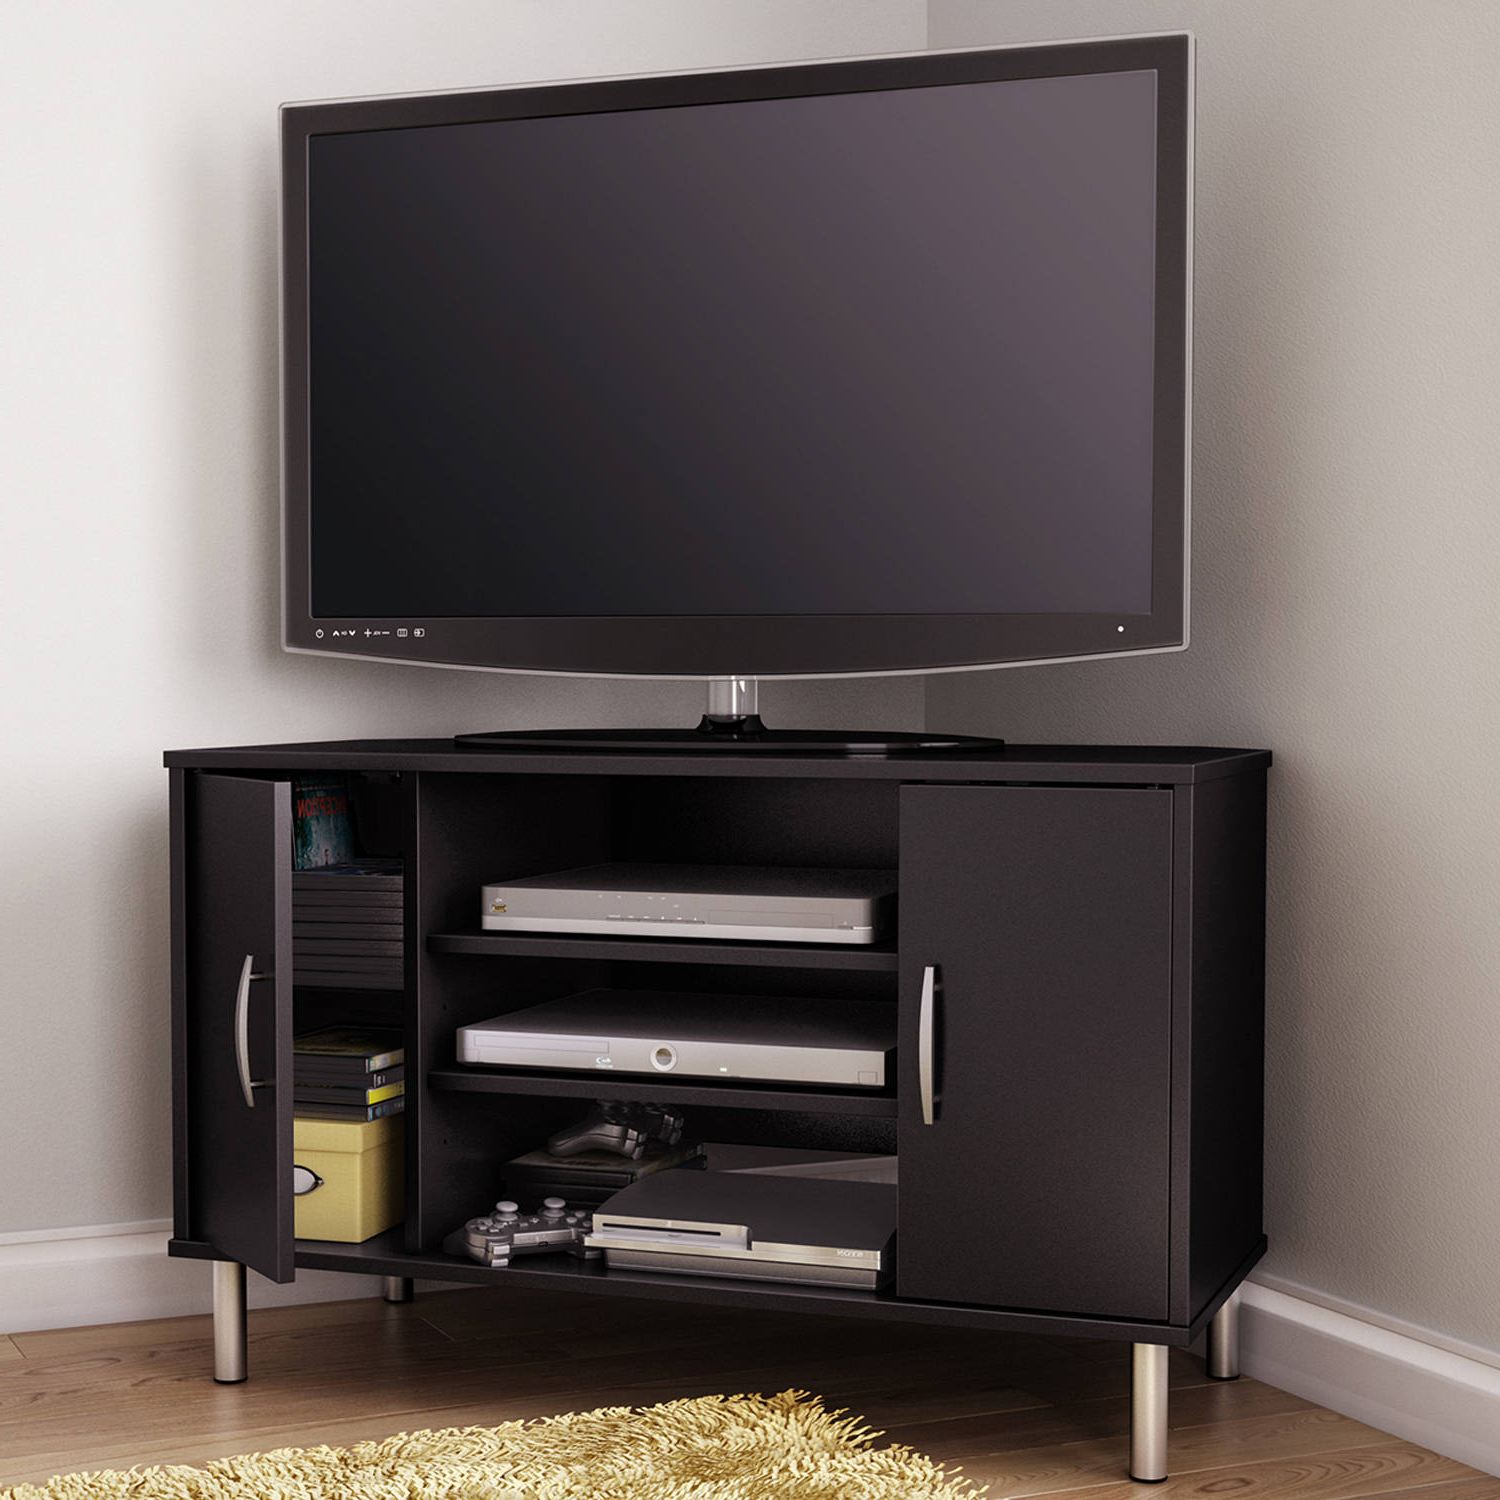 Most Recent Black Tv Stands With Drawers Inside Tv Stands For 65 Inch Flat Screen Living Room Furniture Stand Solid (View 14 of 20)